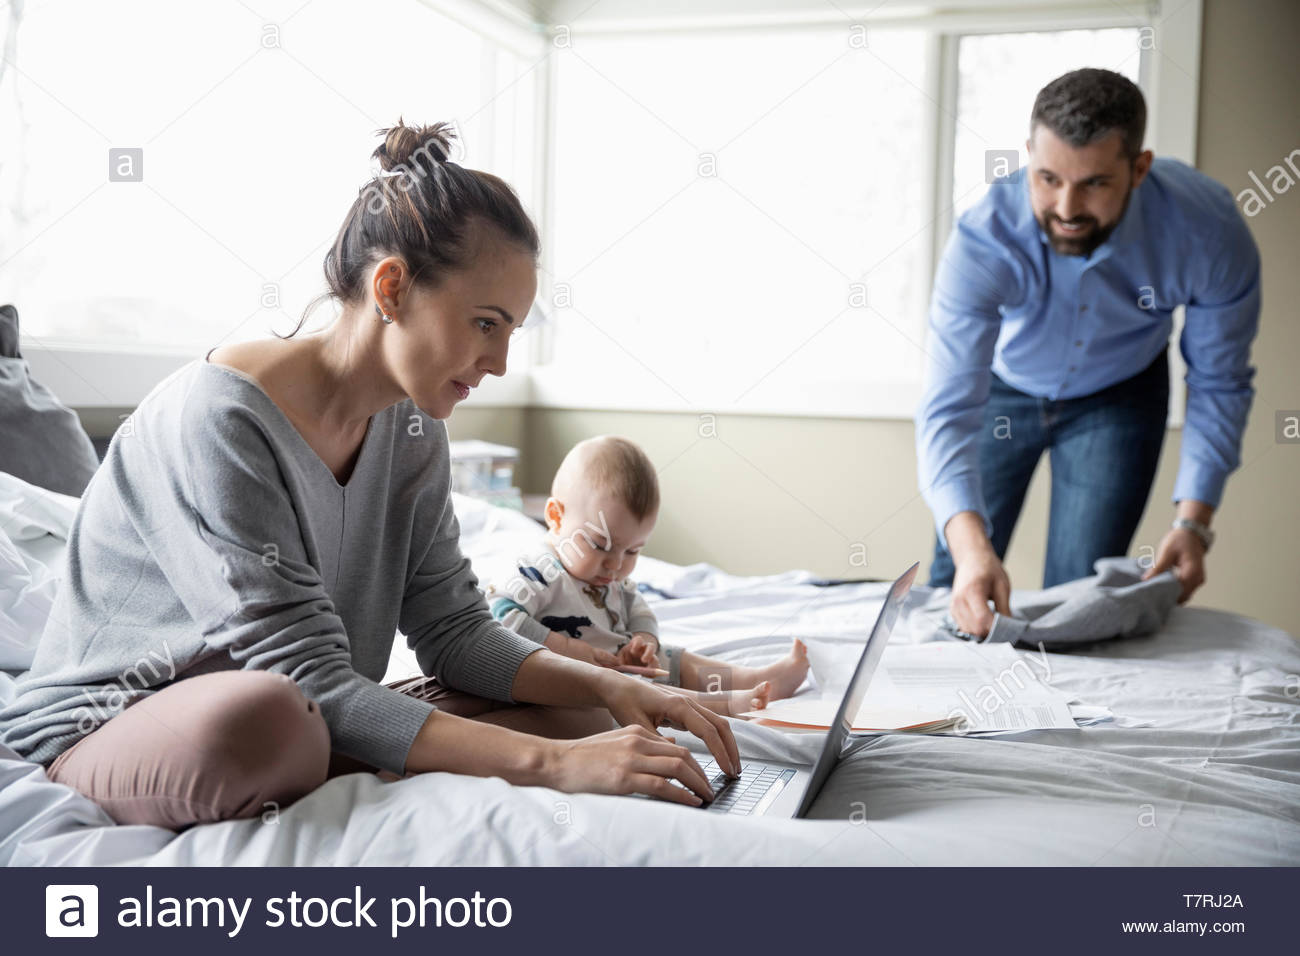 Parents with baby working from home, getting ready for work - Stock Image